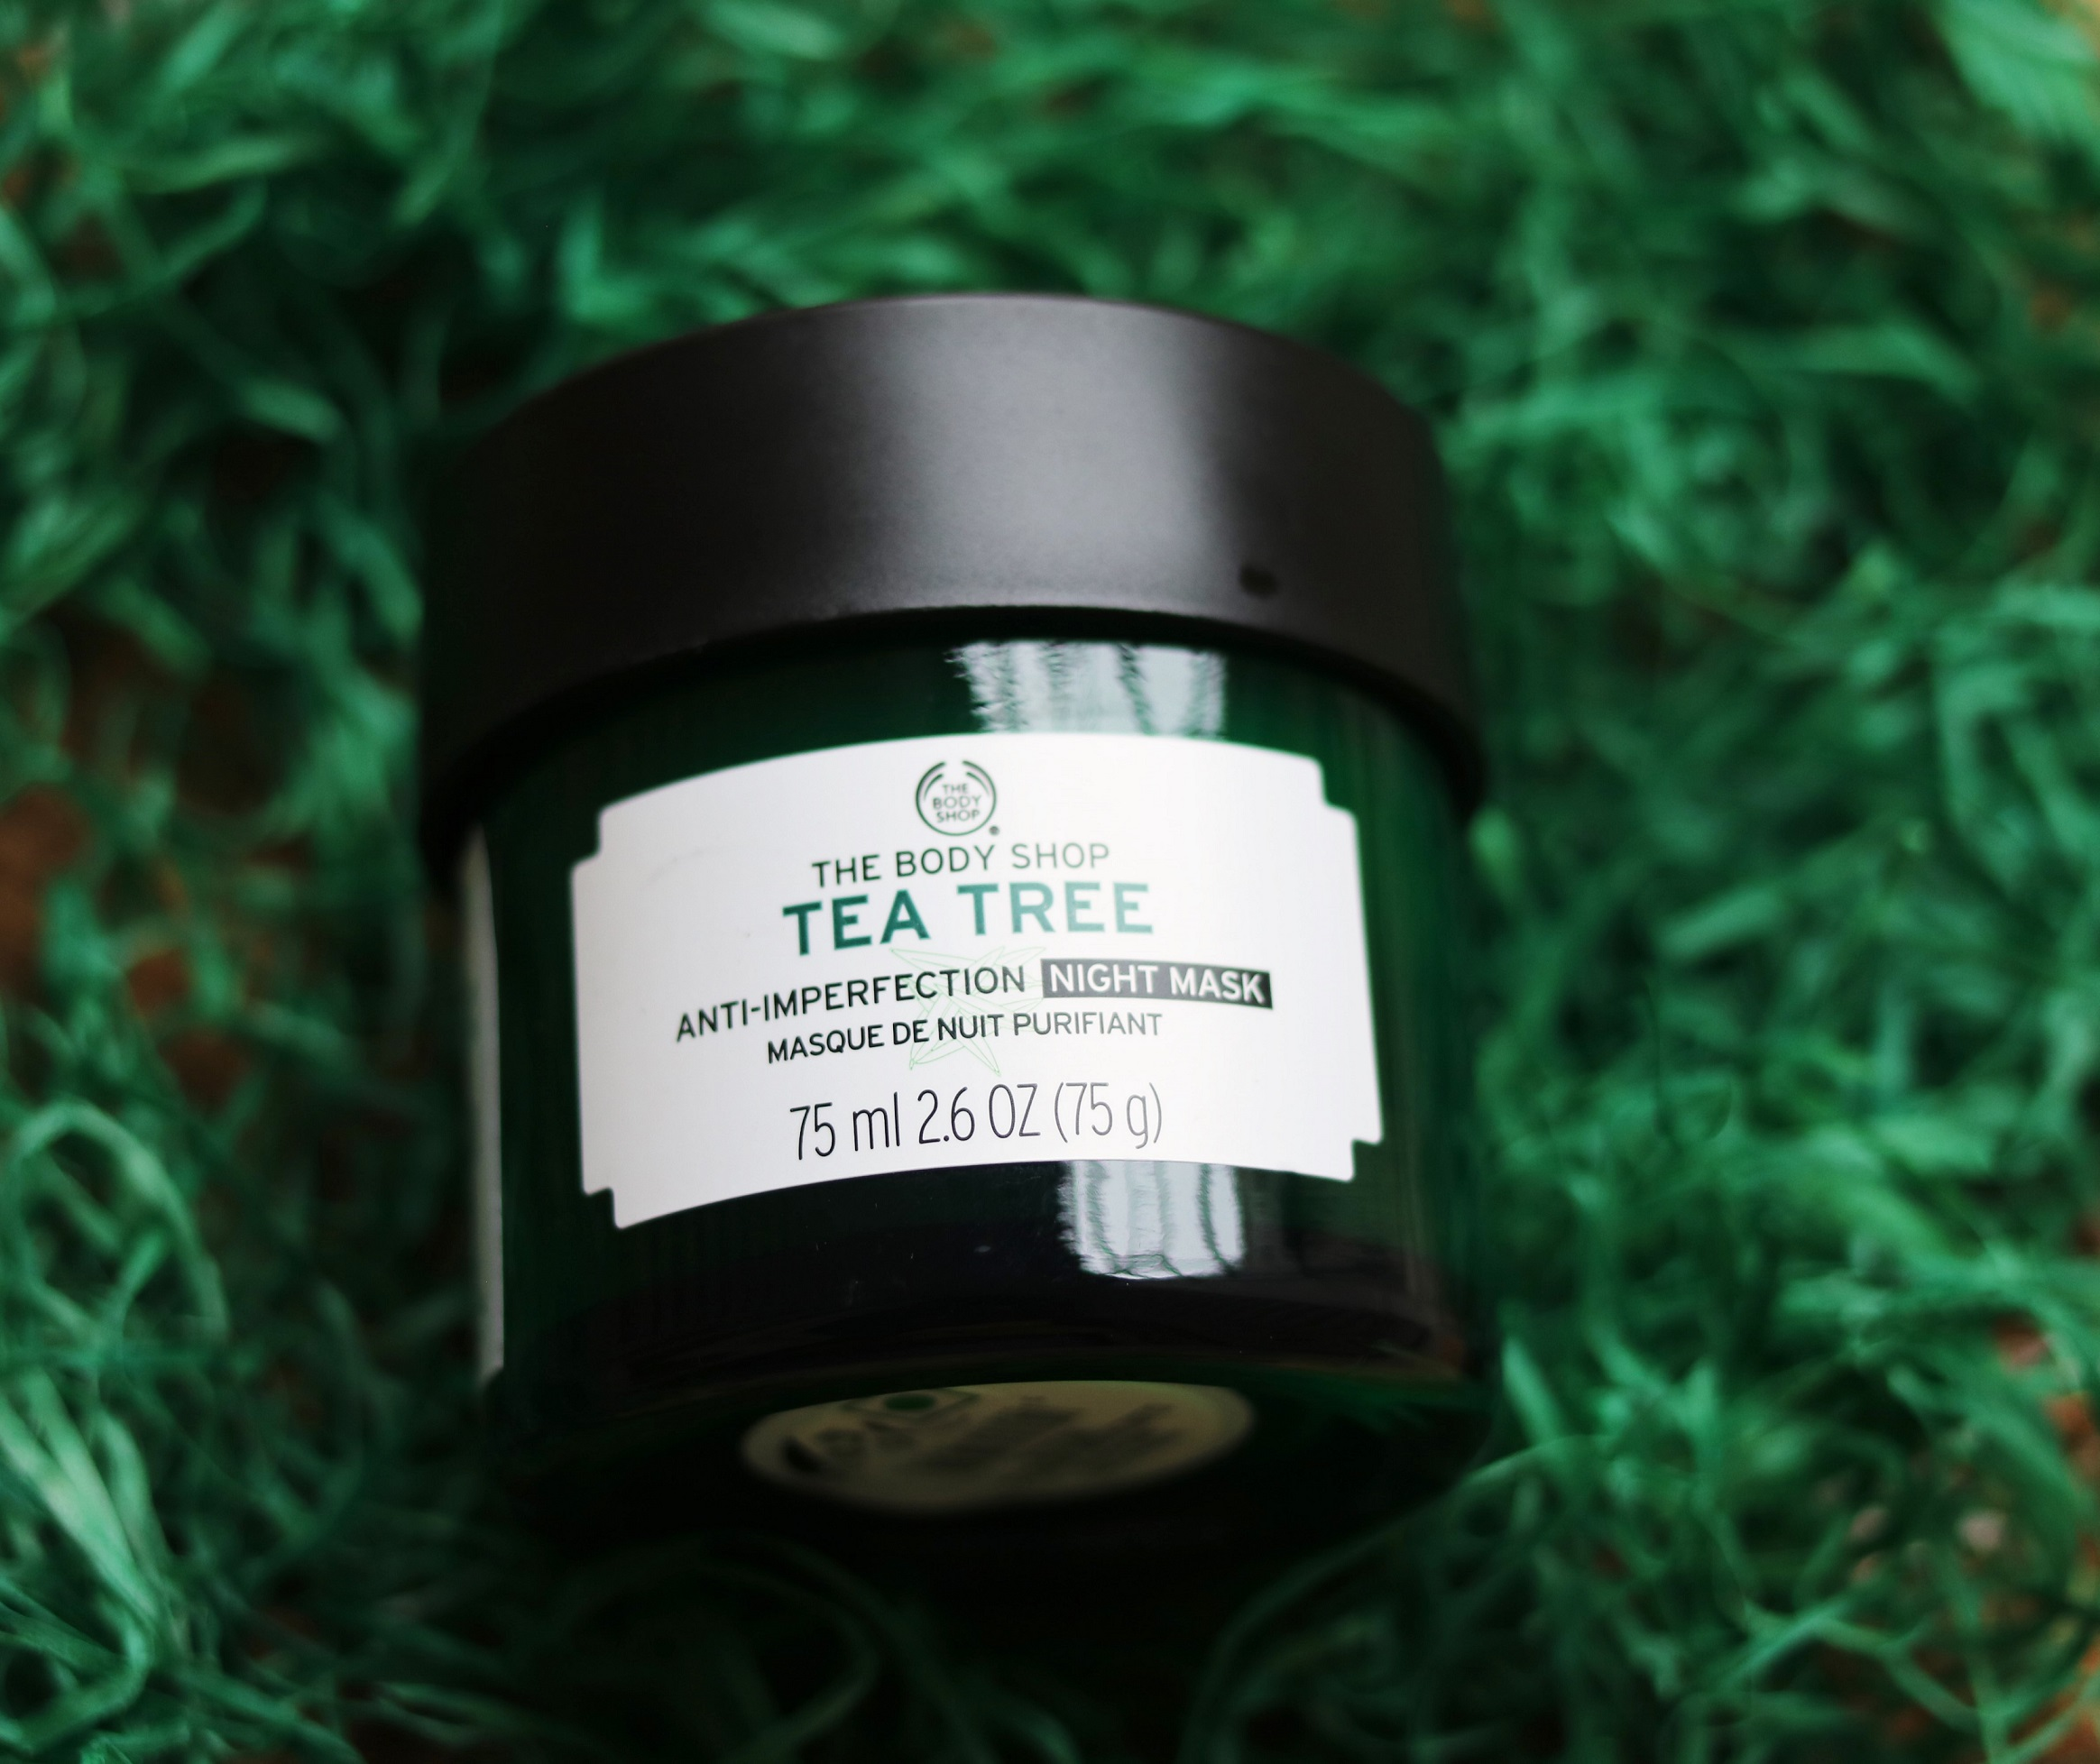 Body Shop Tea Tree Anti-Imperfection Night Mask